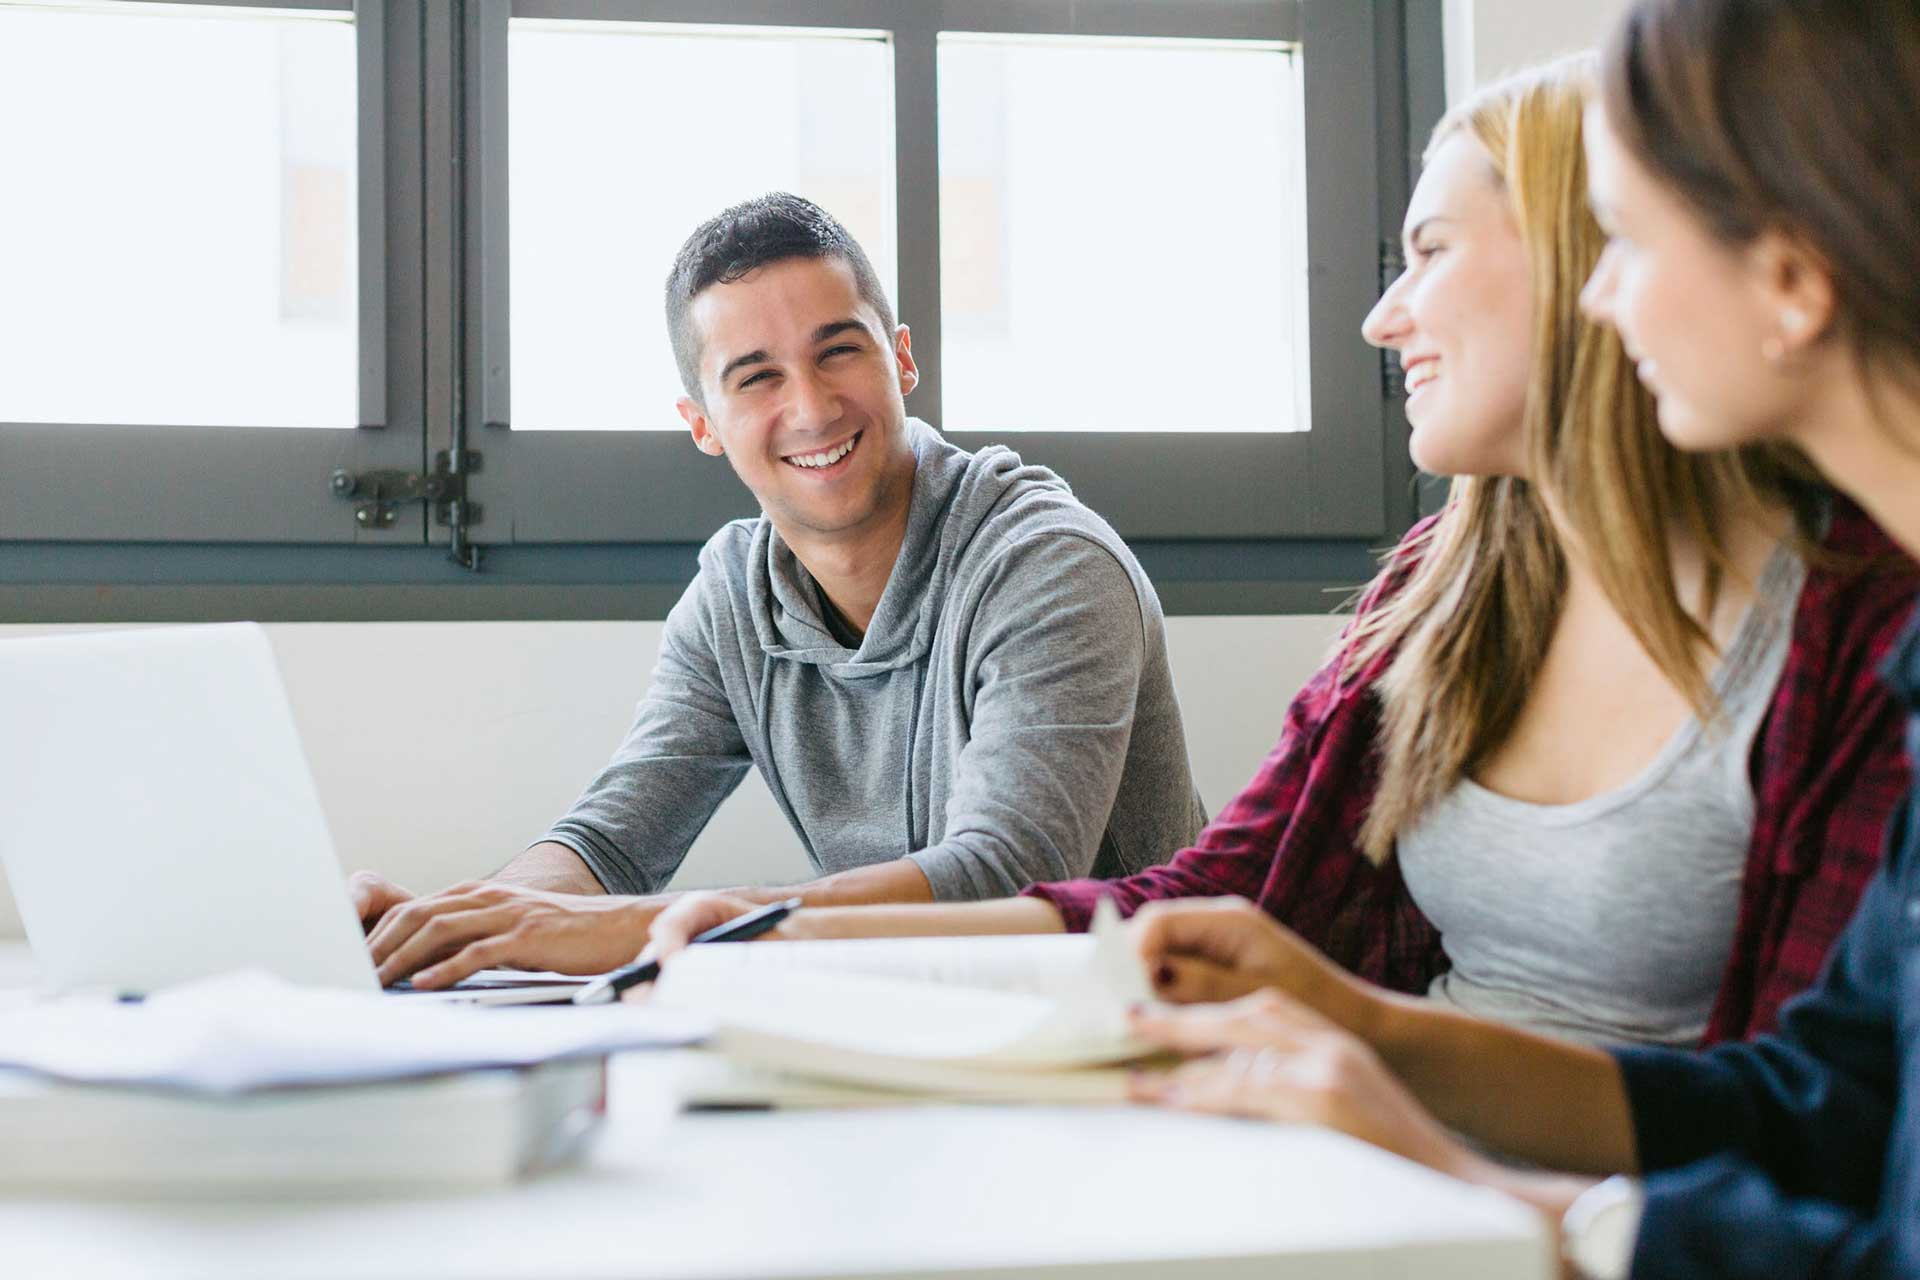 Image of students happily studying